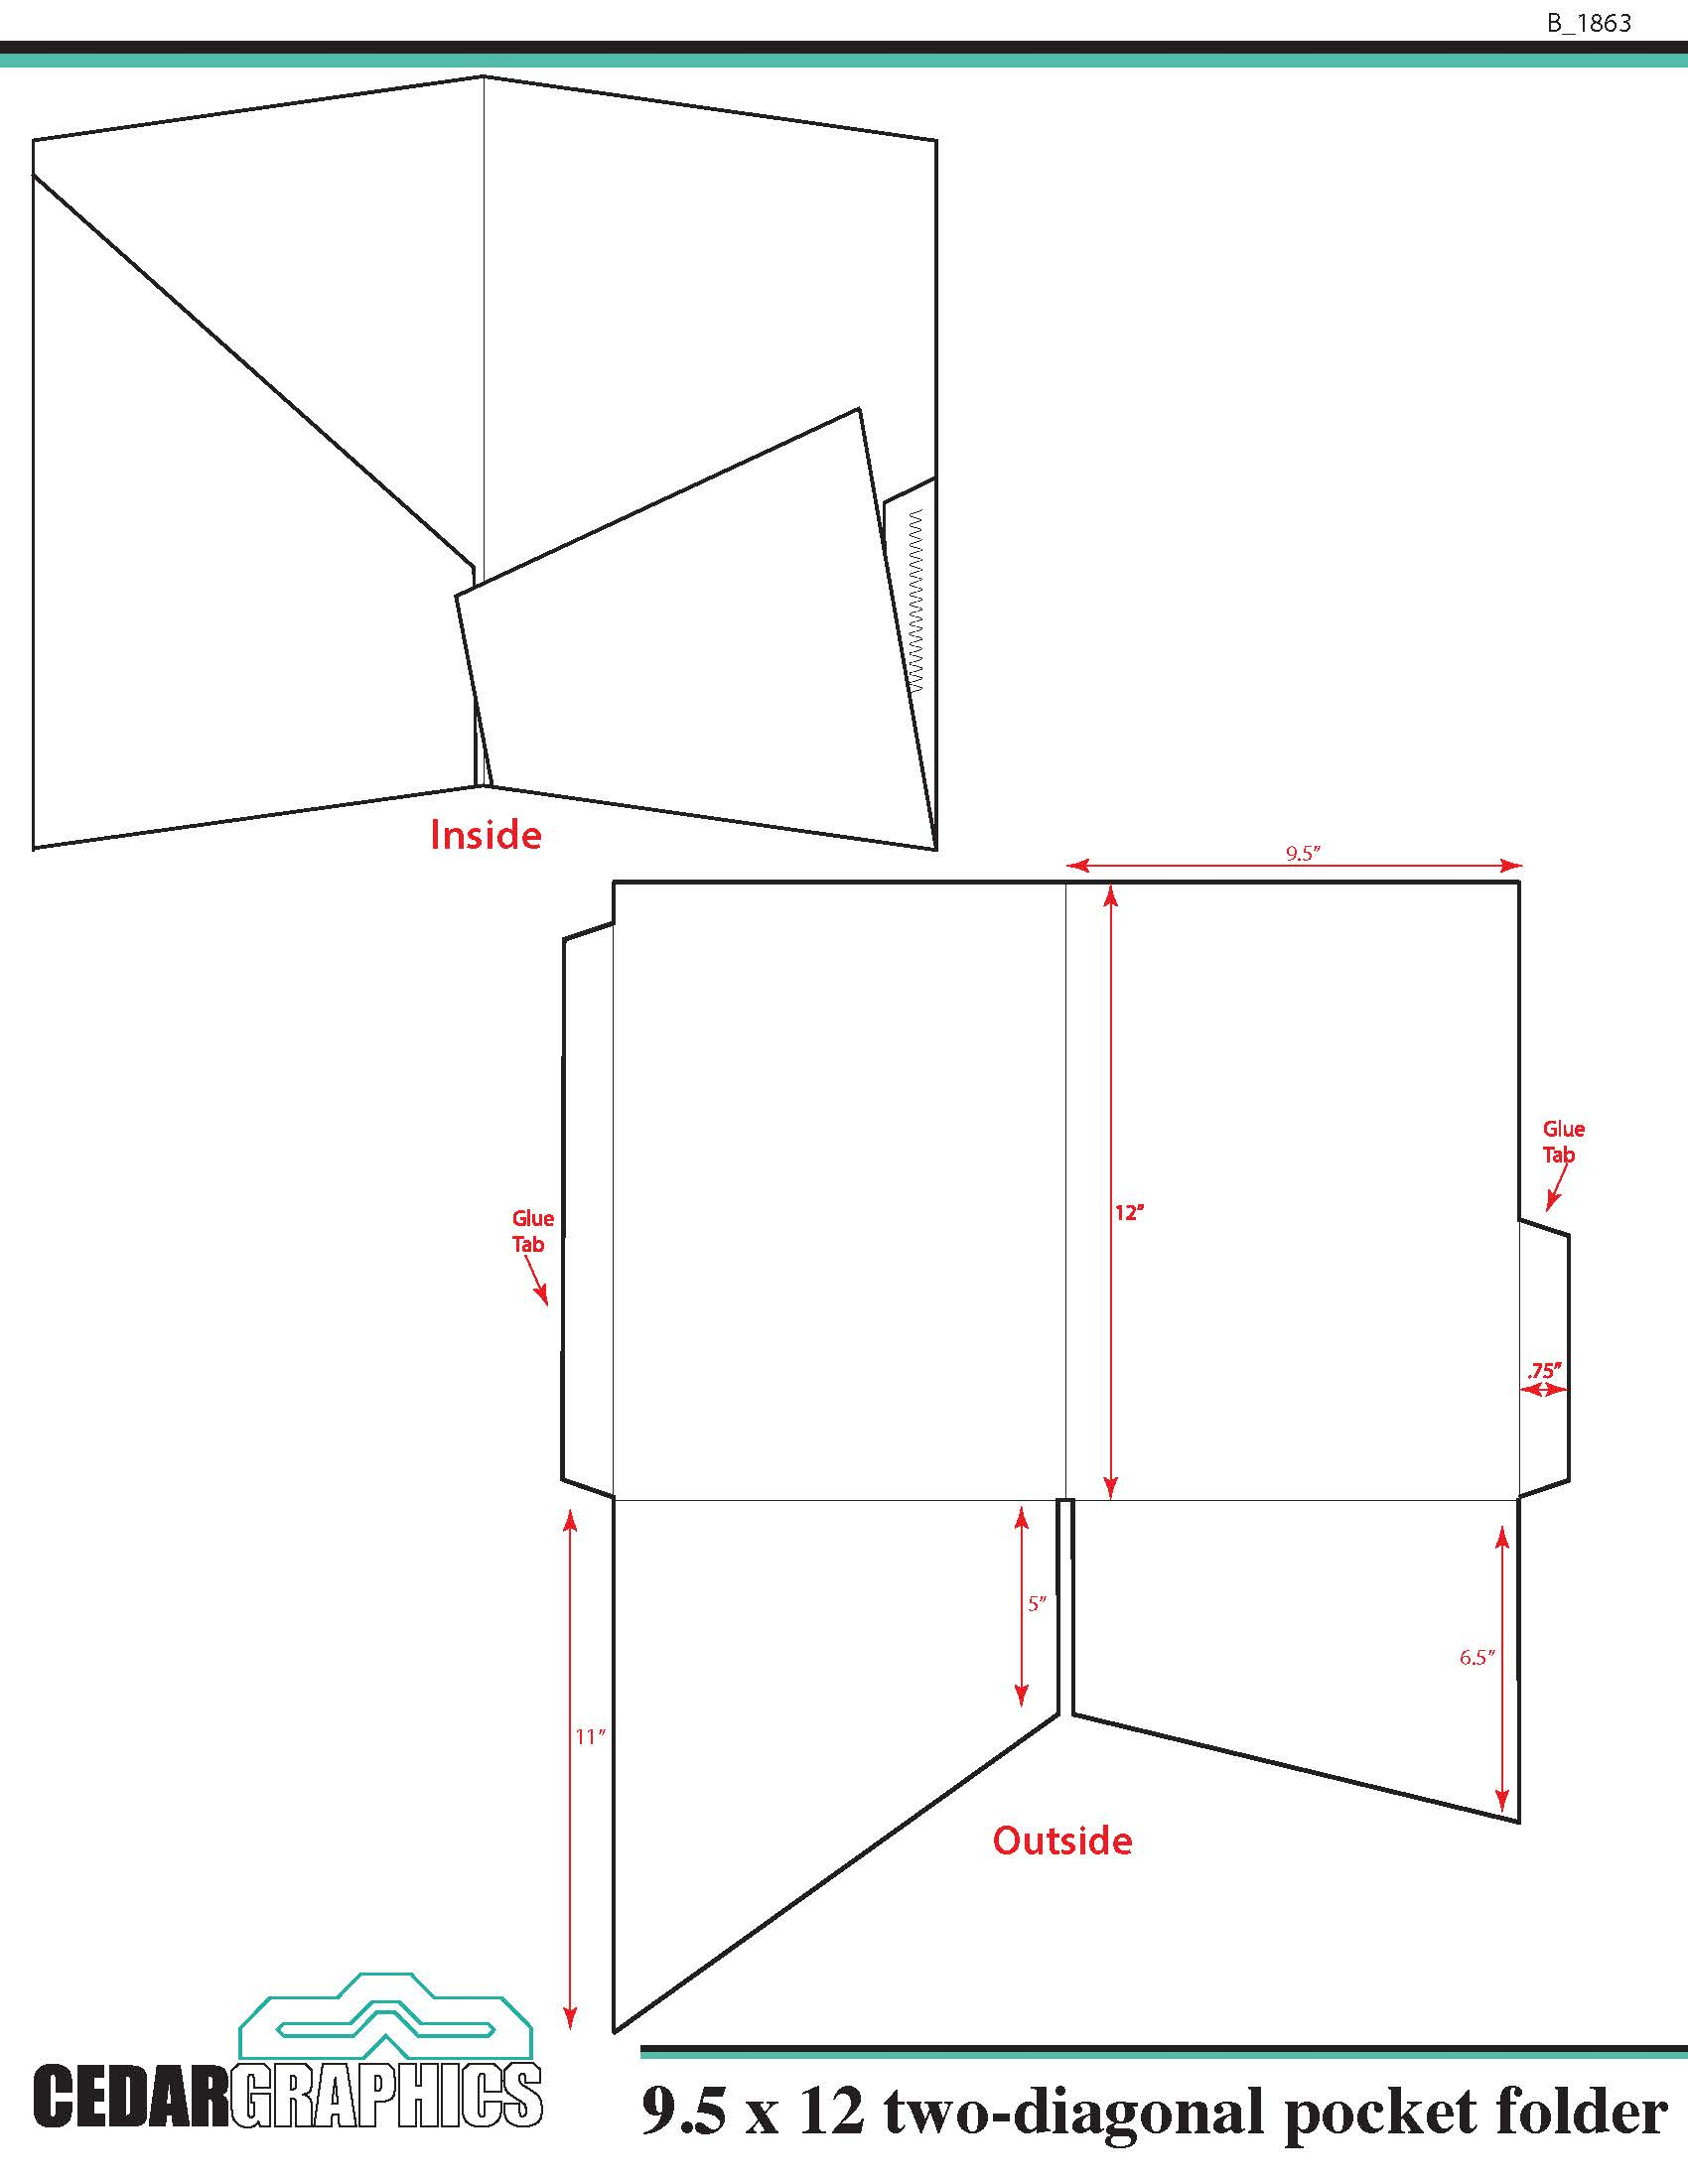 Pocket folder 9 5 x 12 two diagonal pocket template for Pocket folder template illustrator